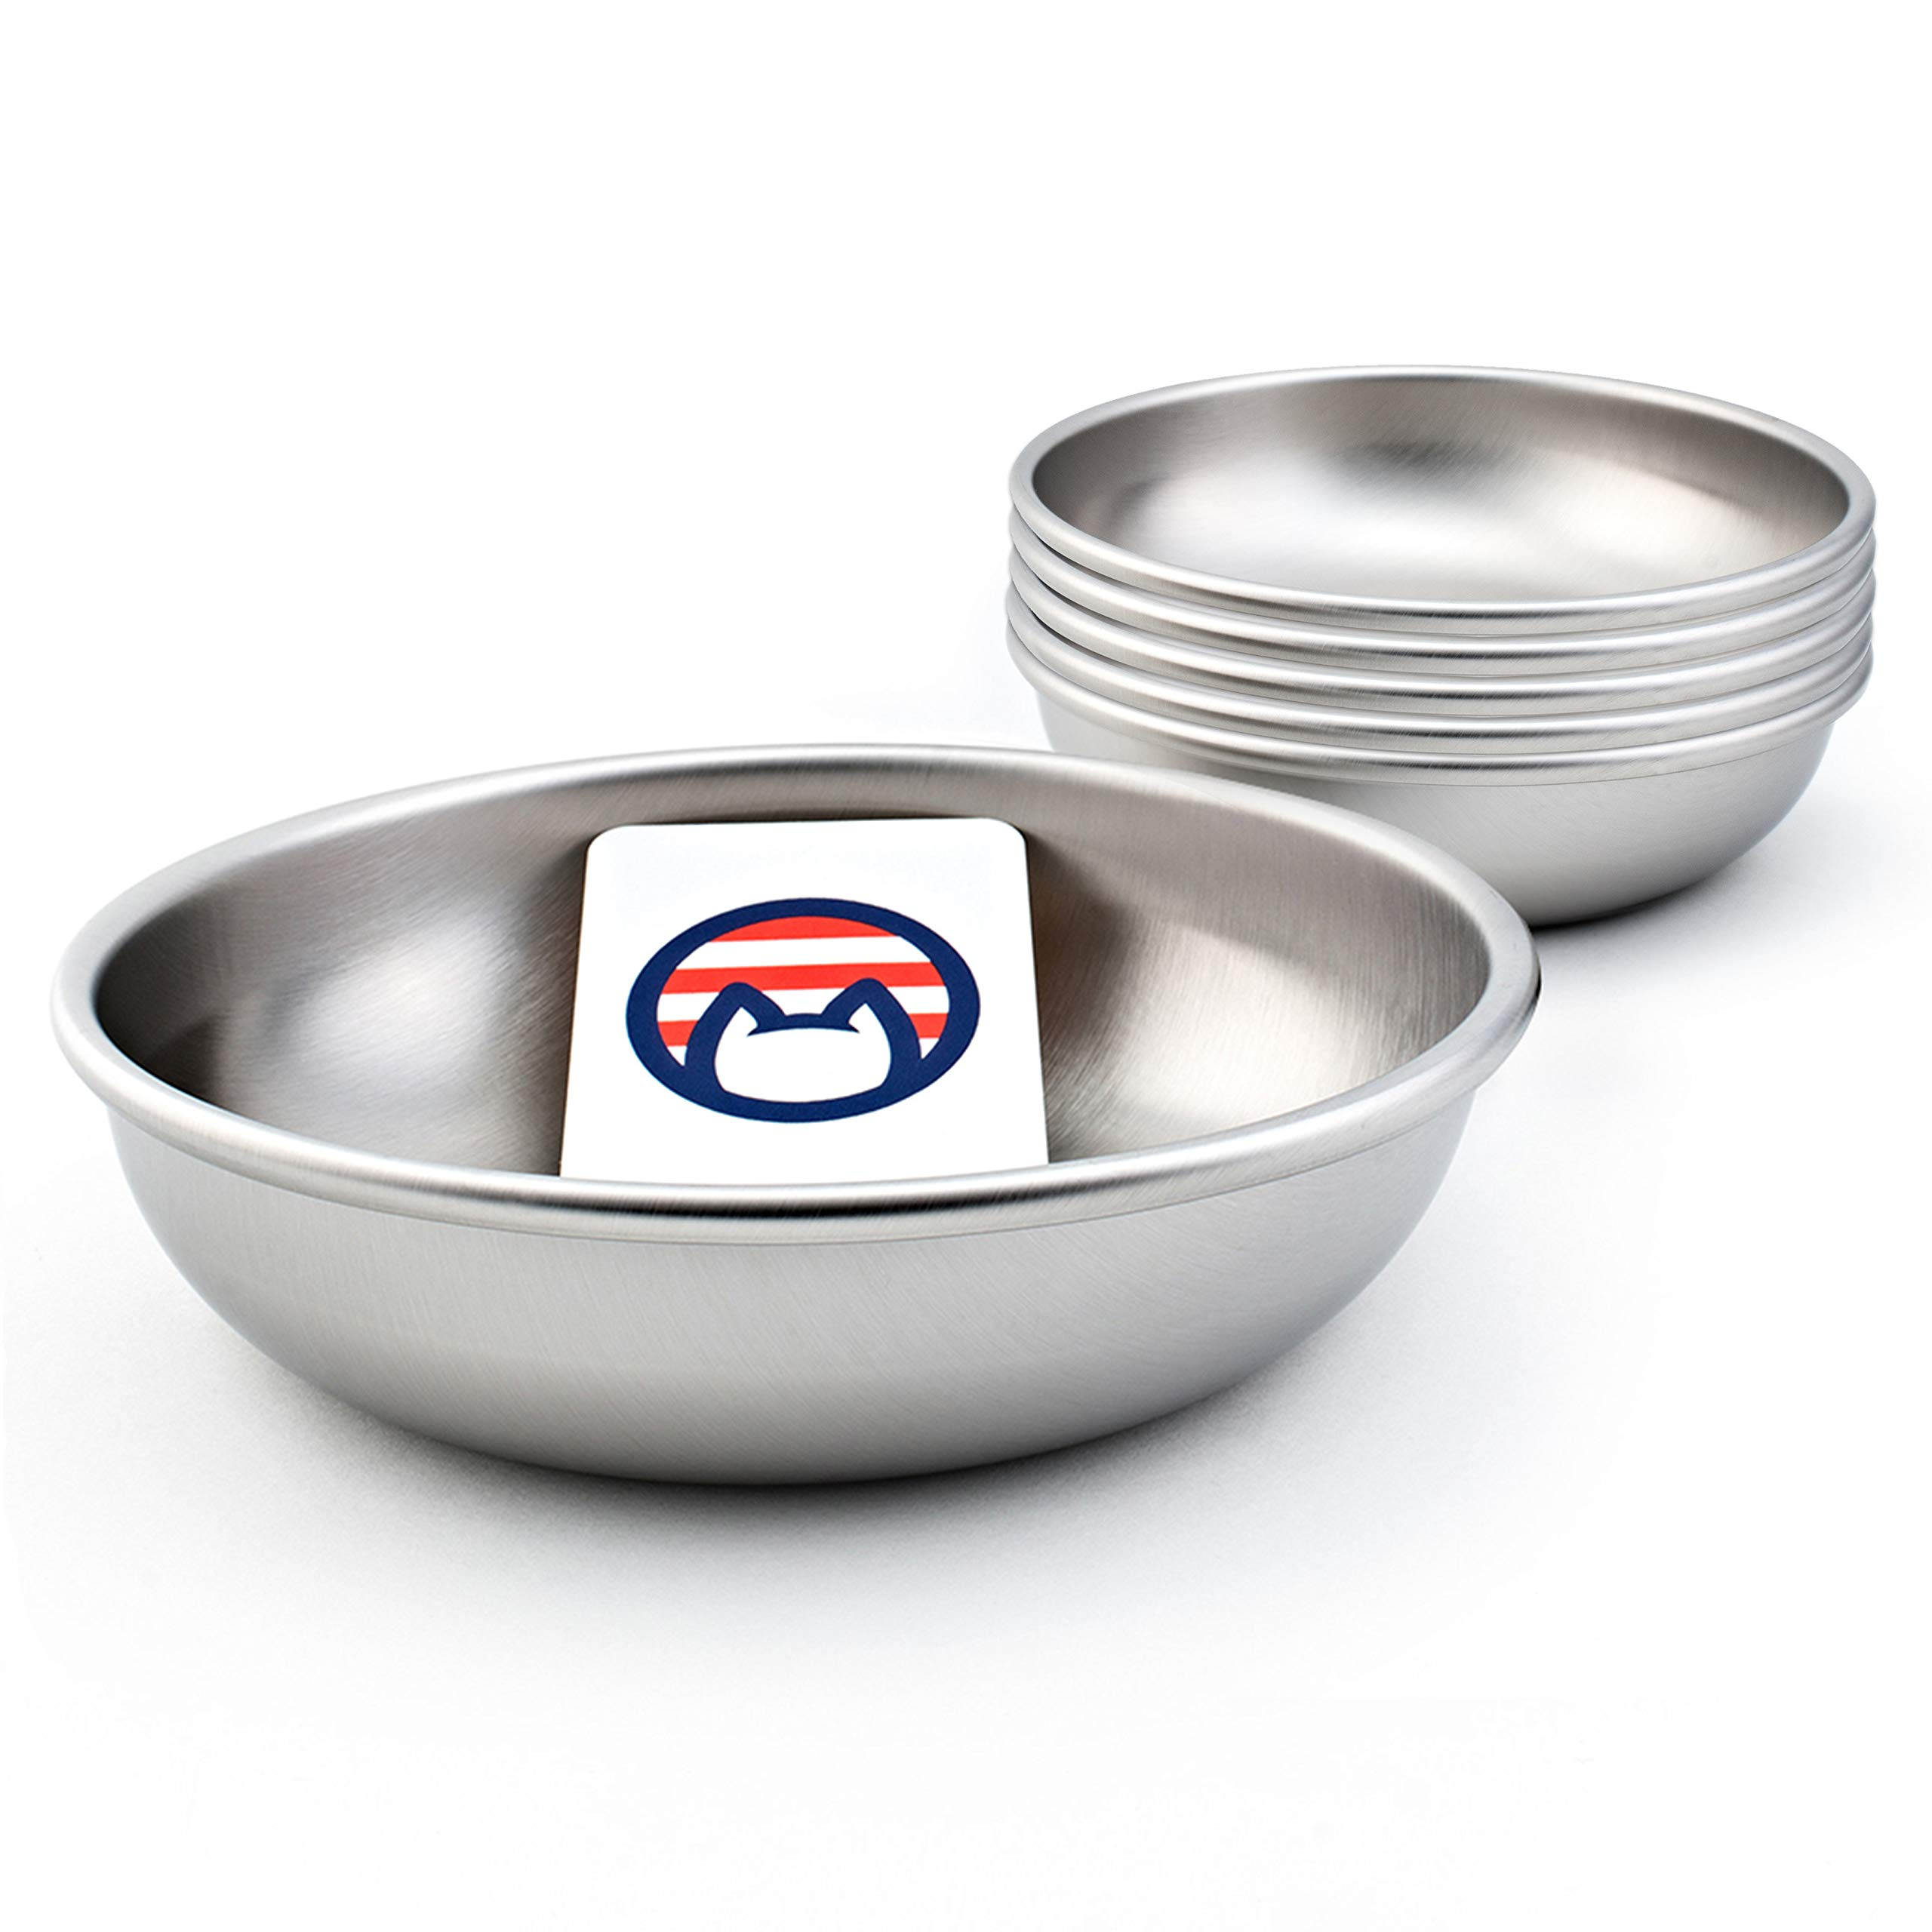 Americat Company Set of 6 Stainless Steel Cat Bowls – Made in The USA – Designed to Prevent Whisker Fatigue – Cat Food and Water Dishes (Set of 6)